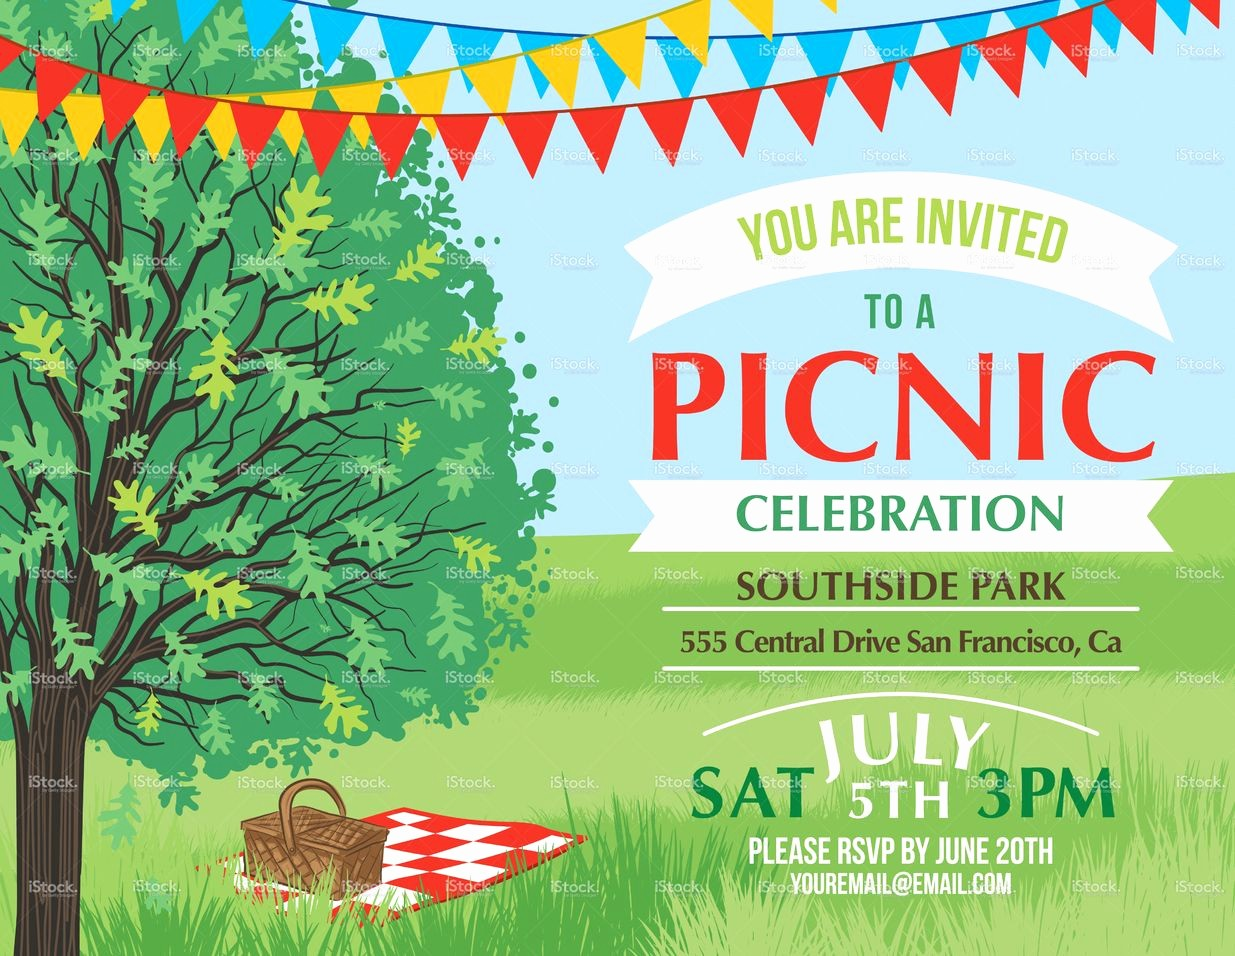 Company Picnic Flyer Template Free New Summer Picnic and Bbq Invitation Flyer or Template Text